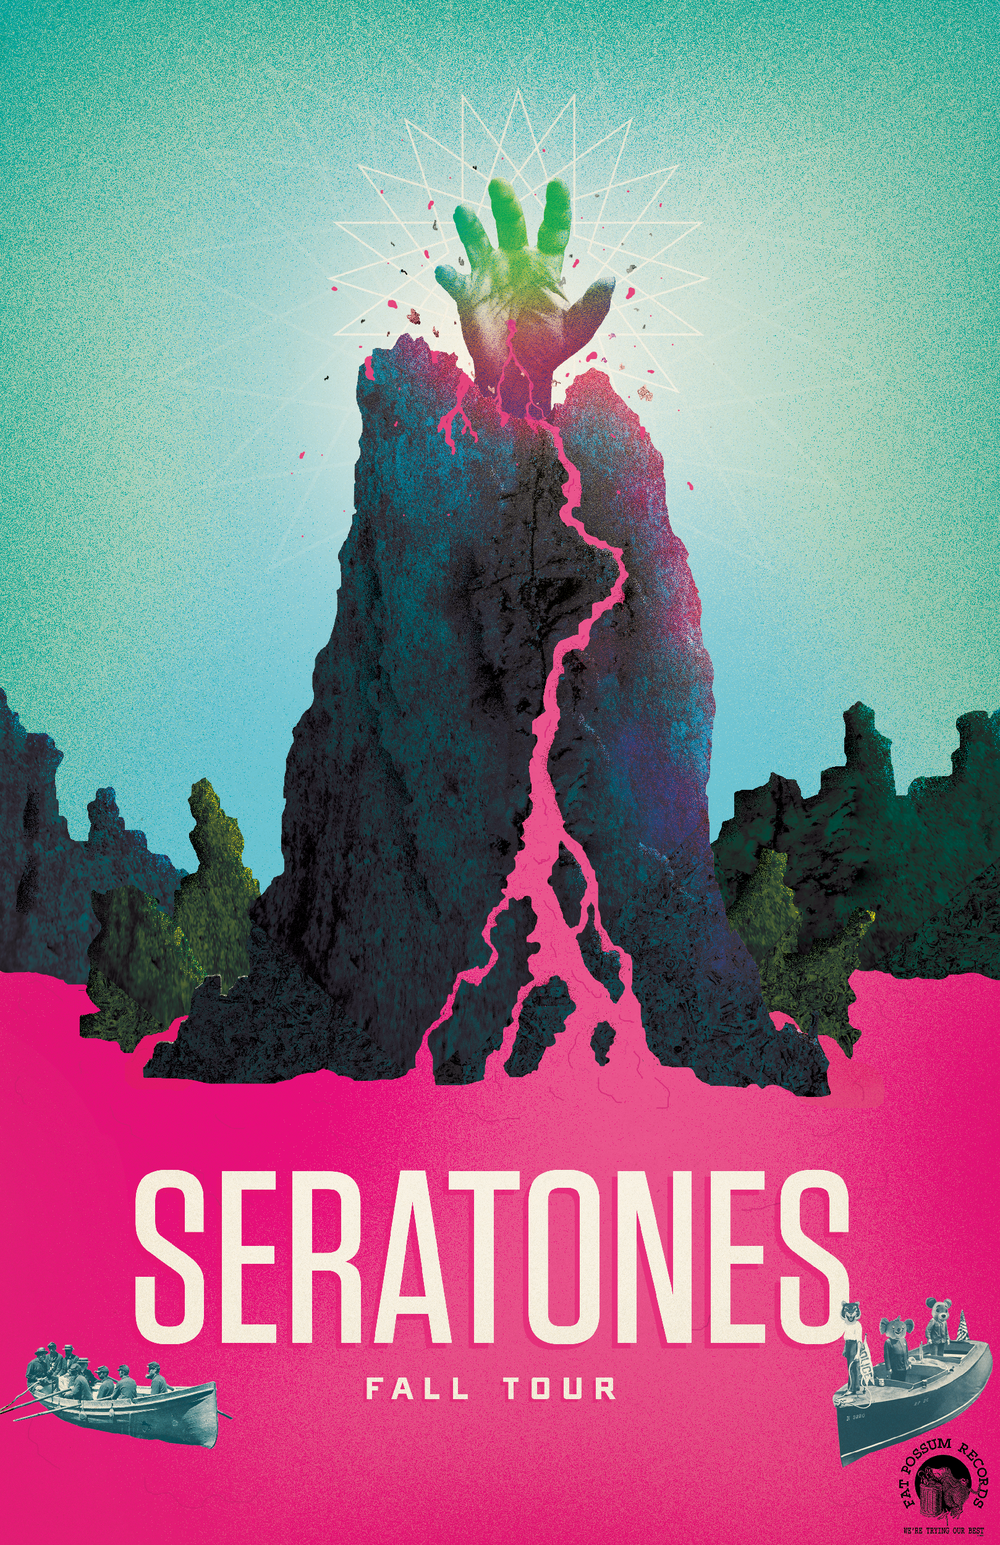 Seratones Fall Tour.png